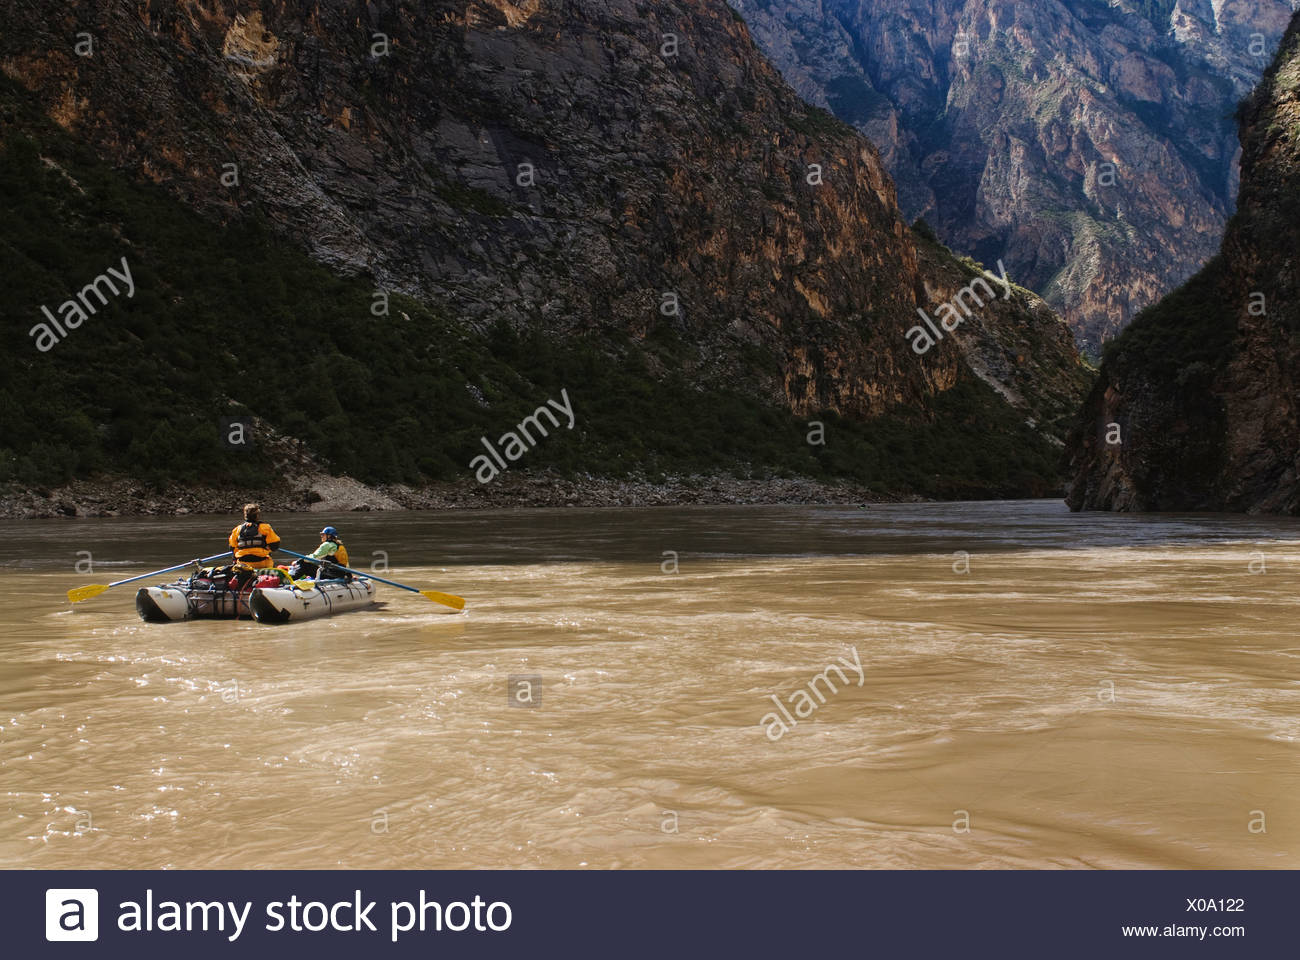 A rubber raft rows downstream during a whitewater rafting trip to